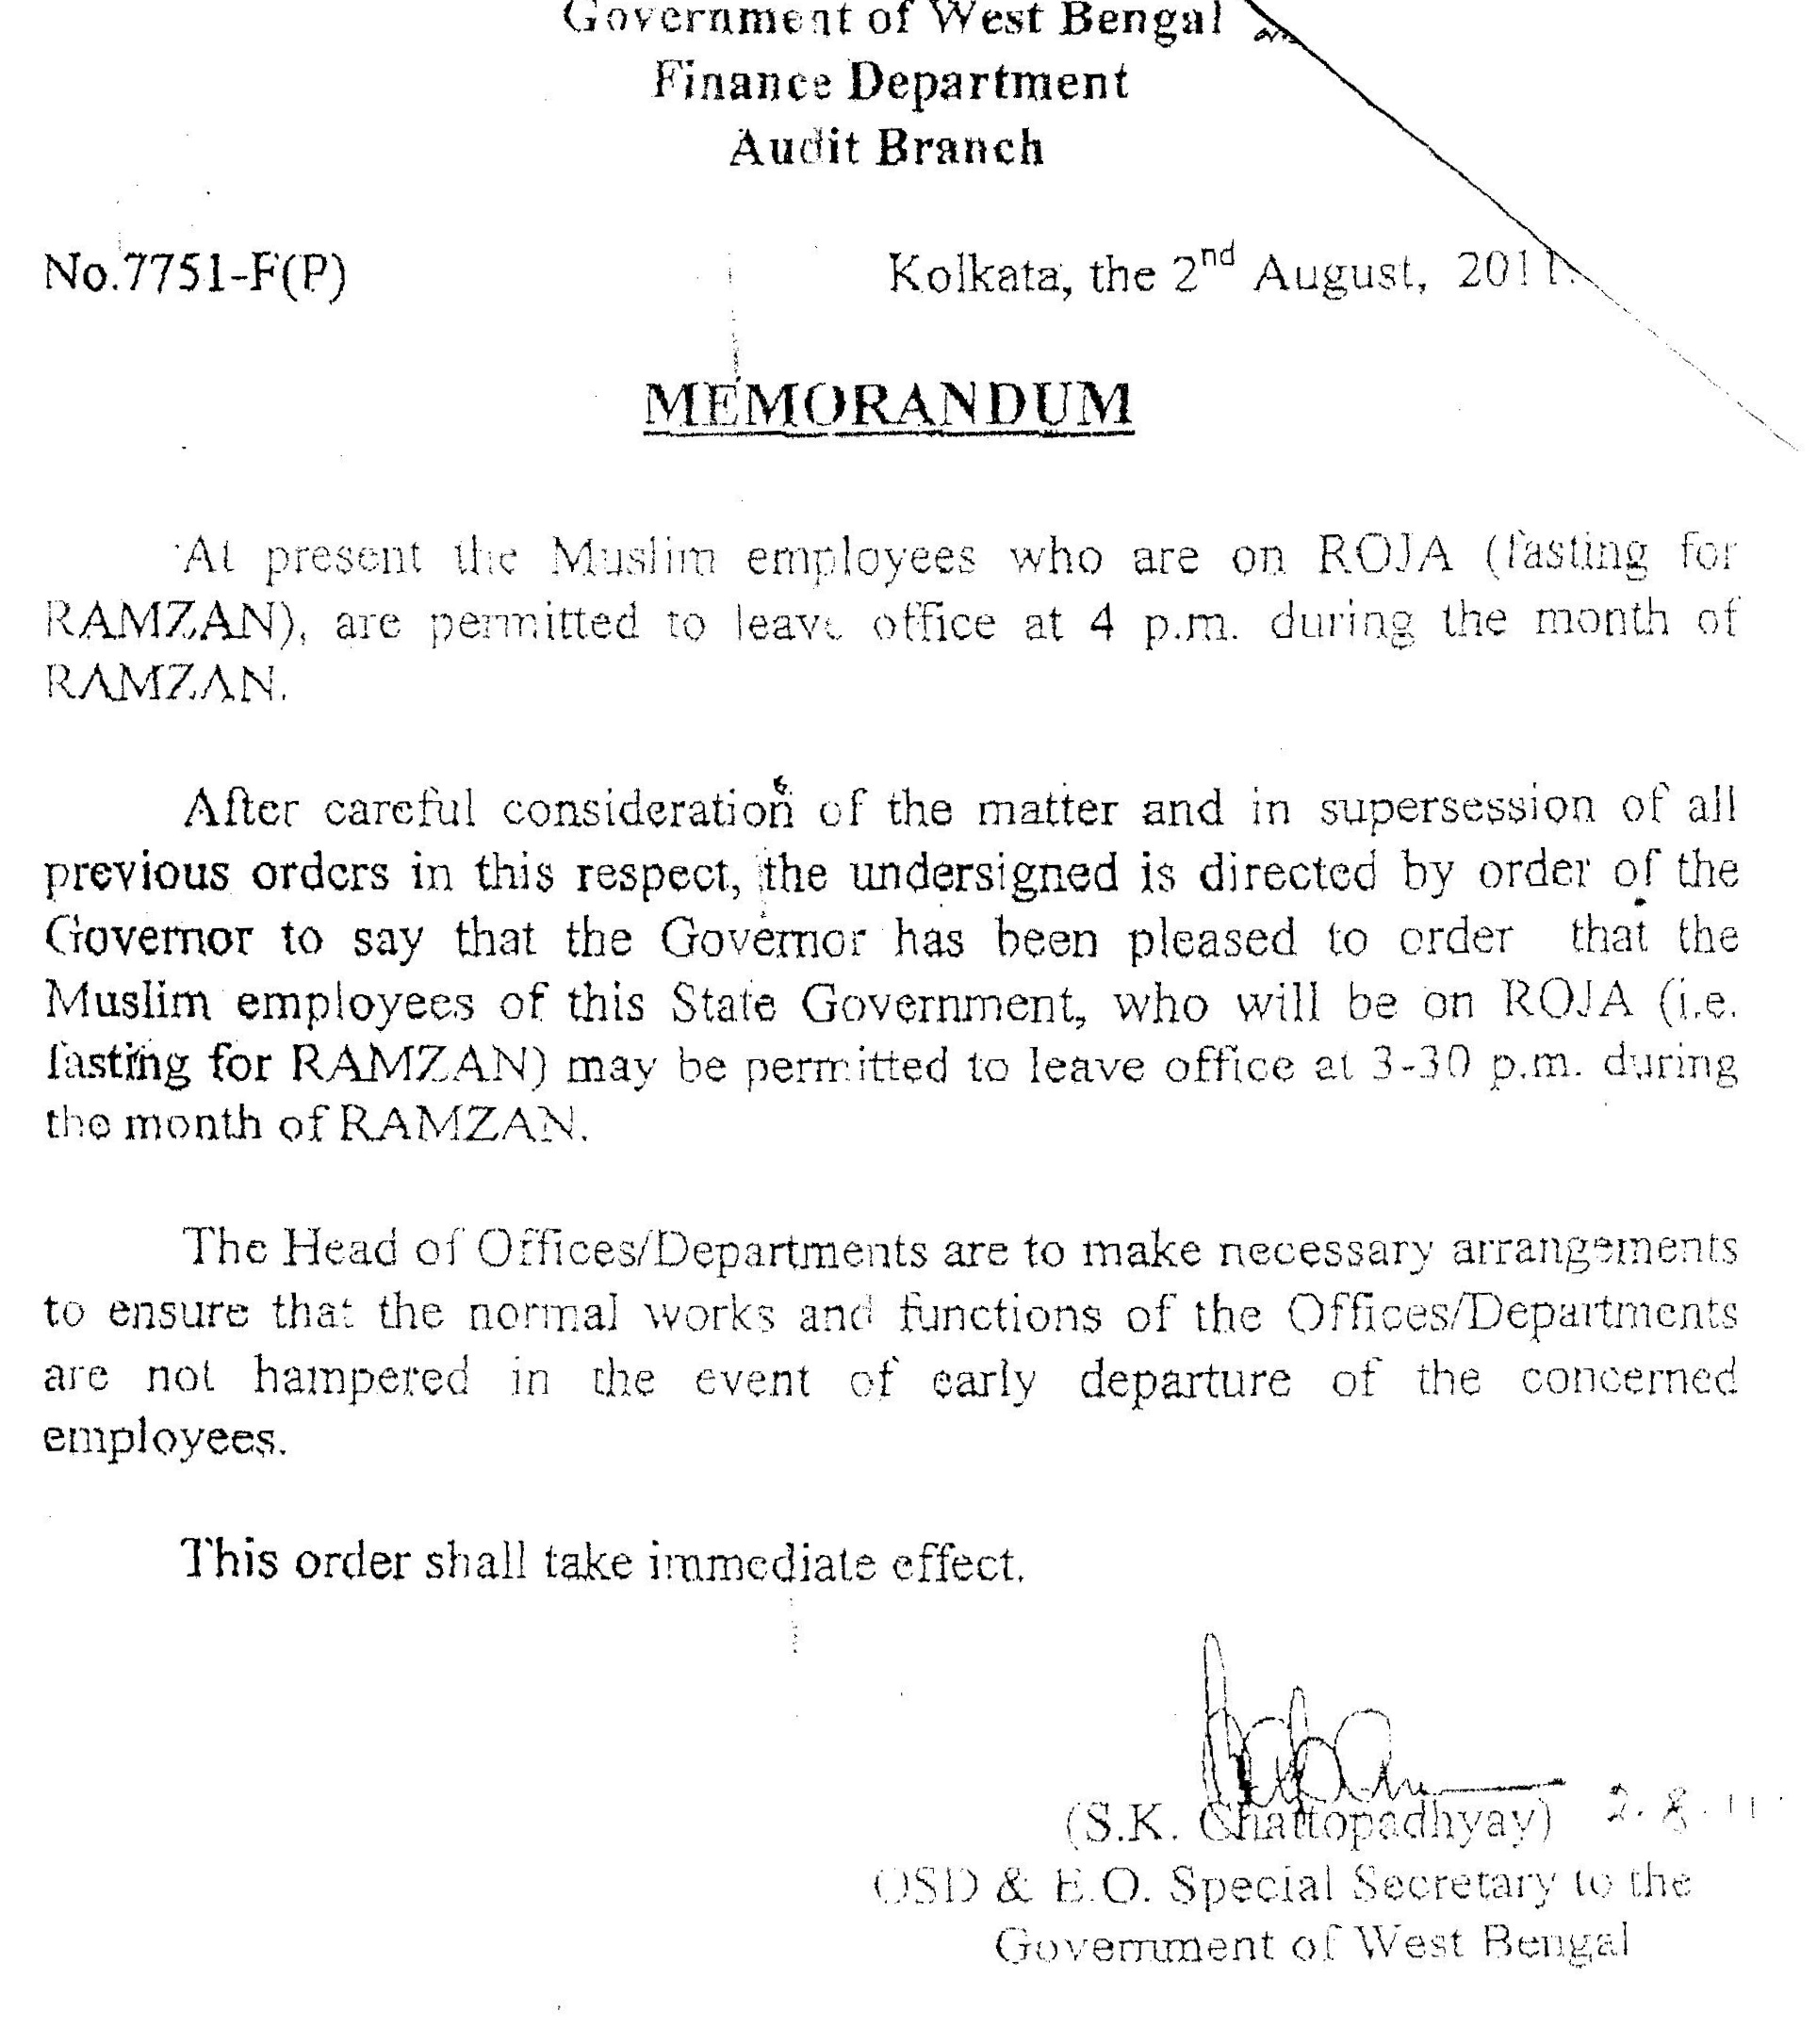 permission of leave at 330pm during ramzan view in jpg